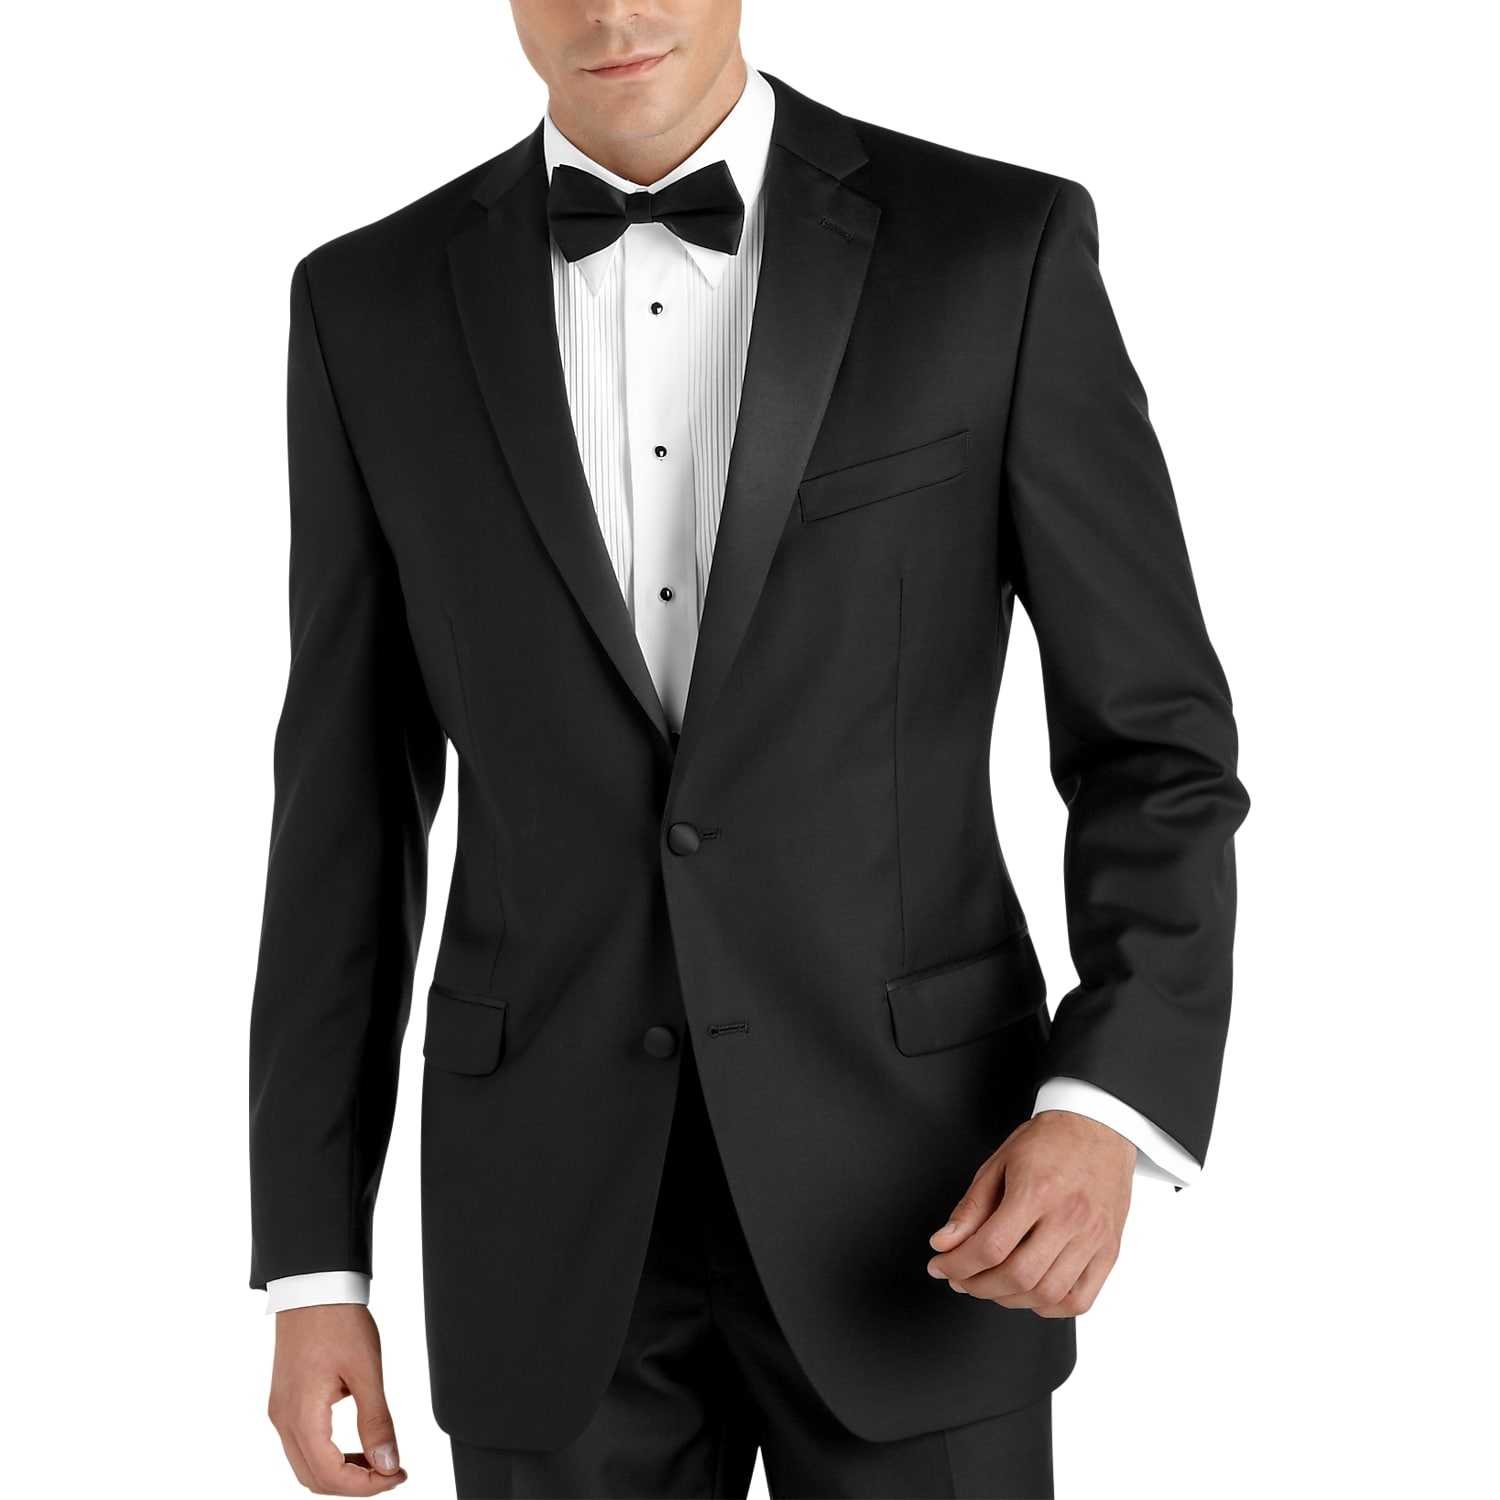 Image result for vera wang tuxedo men's wearhouse